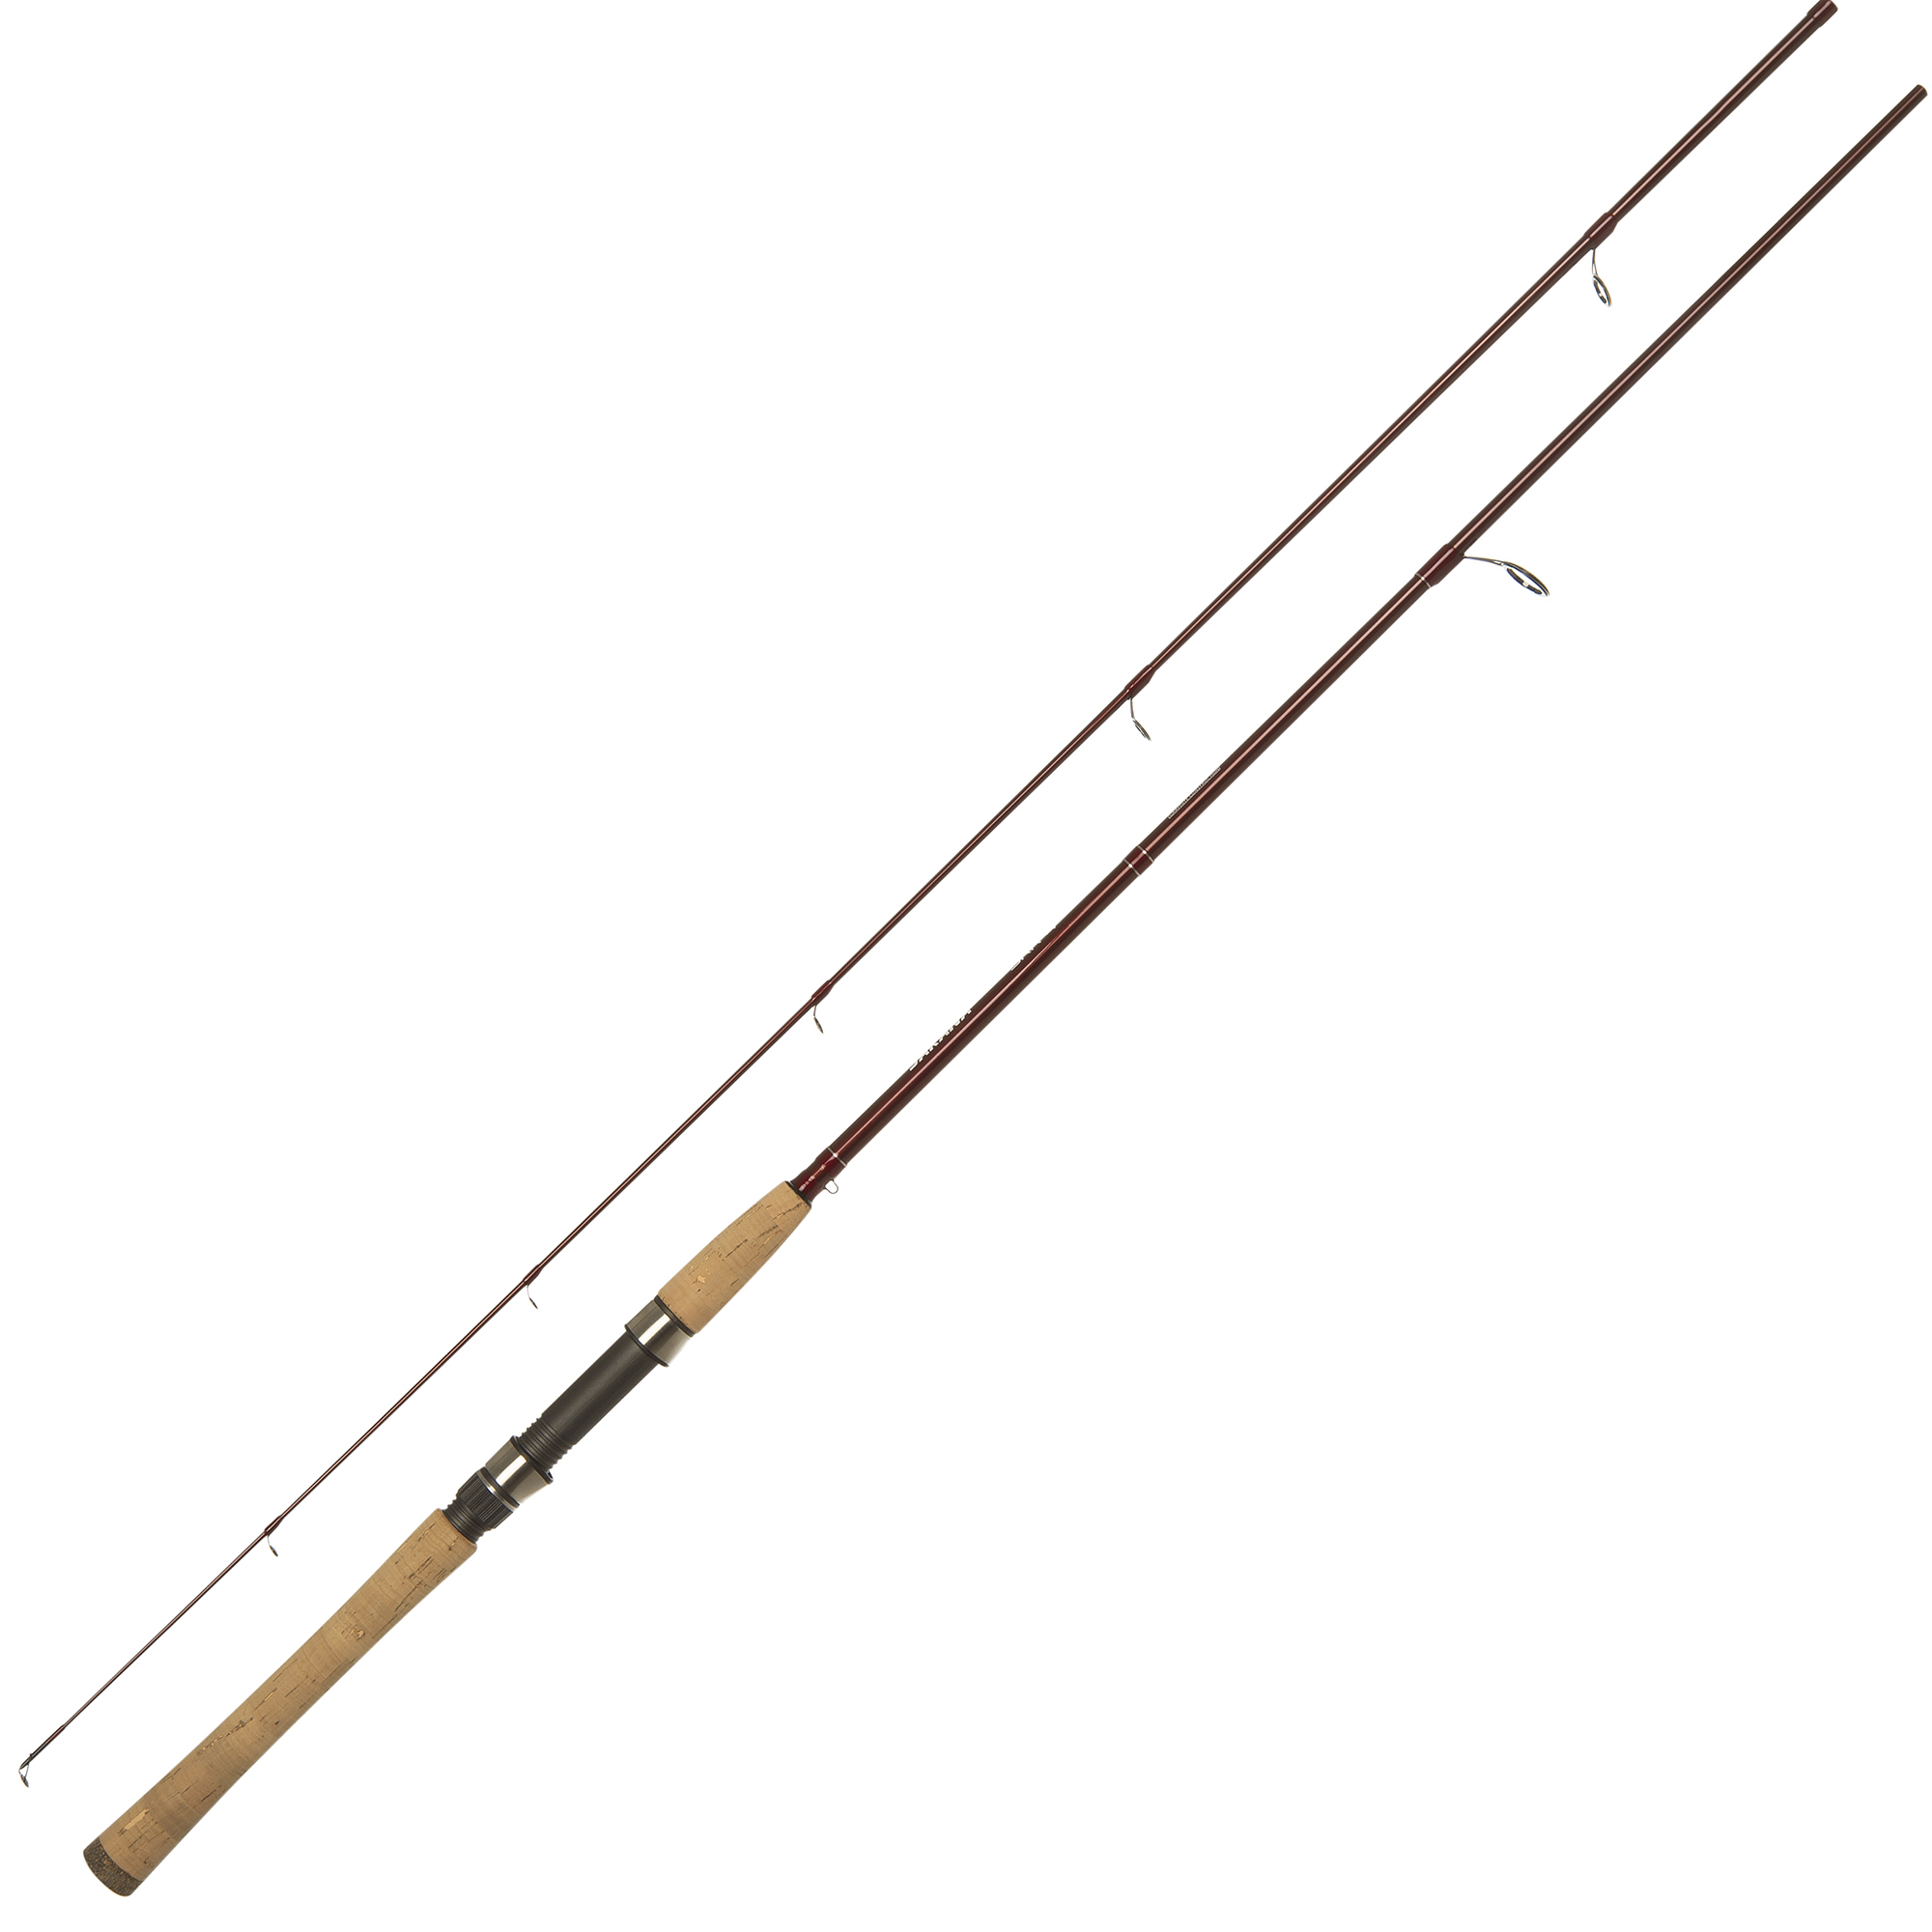 Sakana SKR4 Spinning Rod, 5'0″ Ultra-Light 1-piece